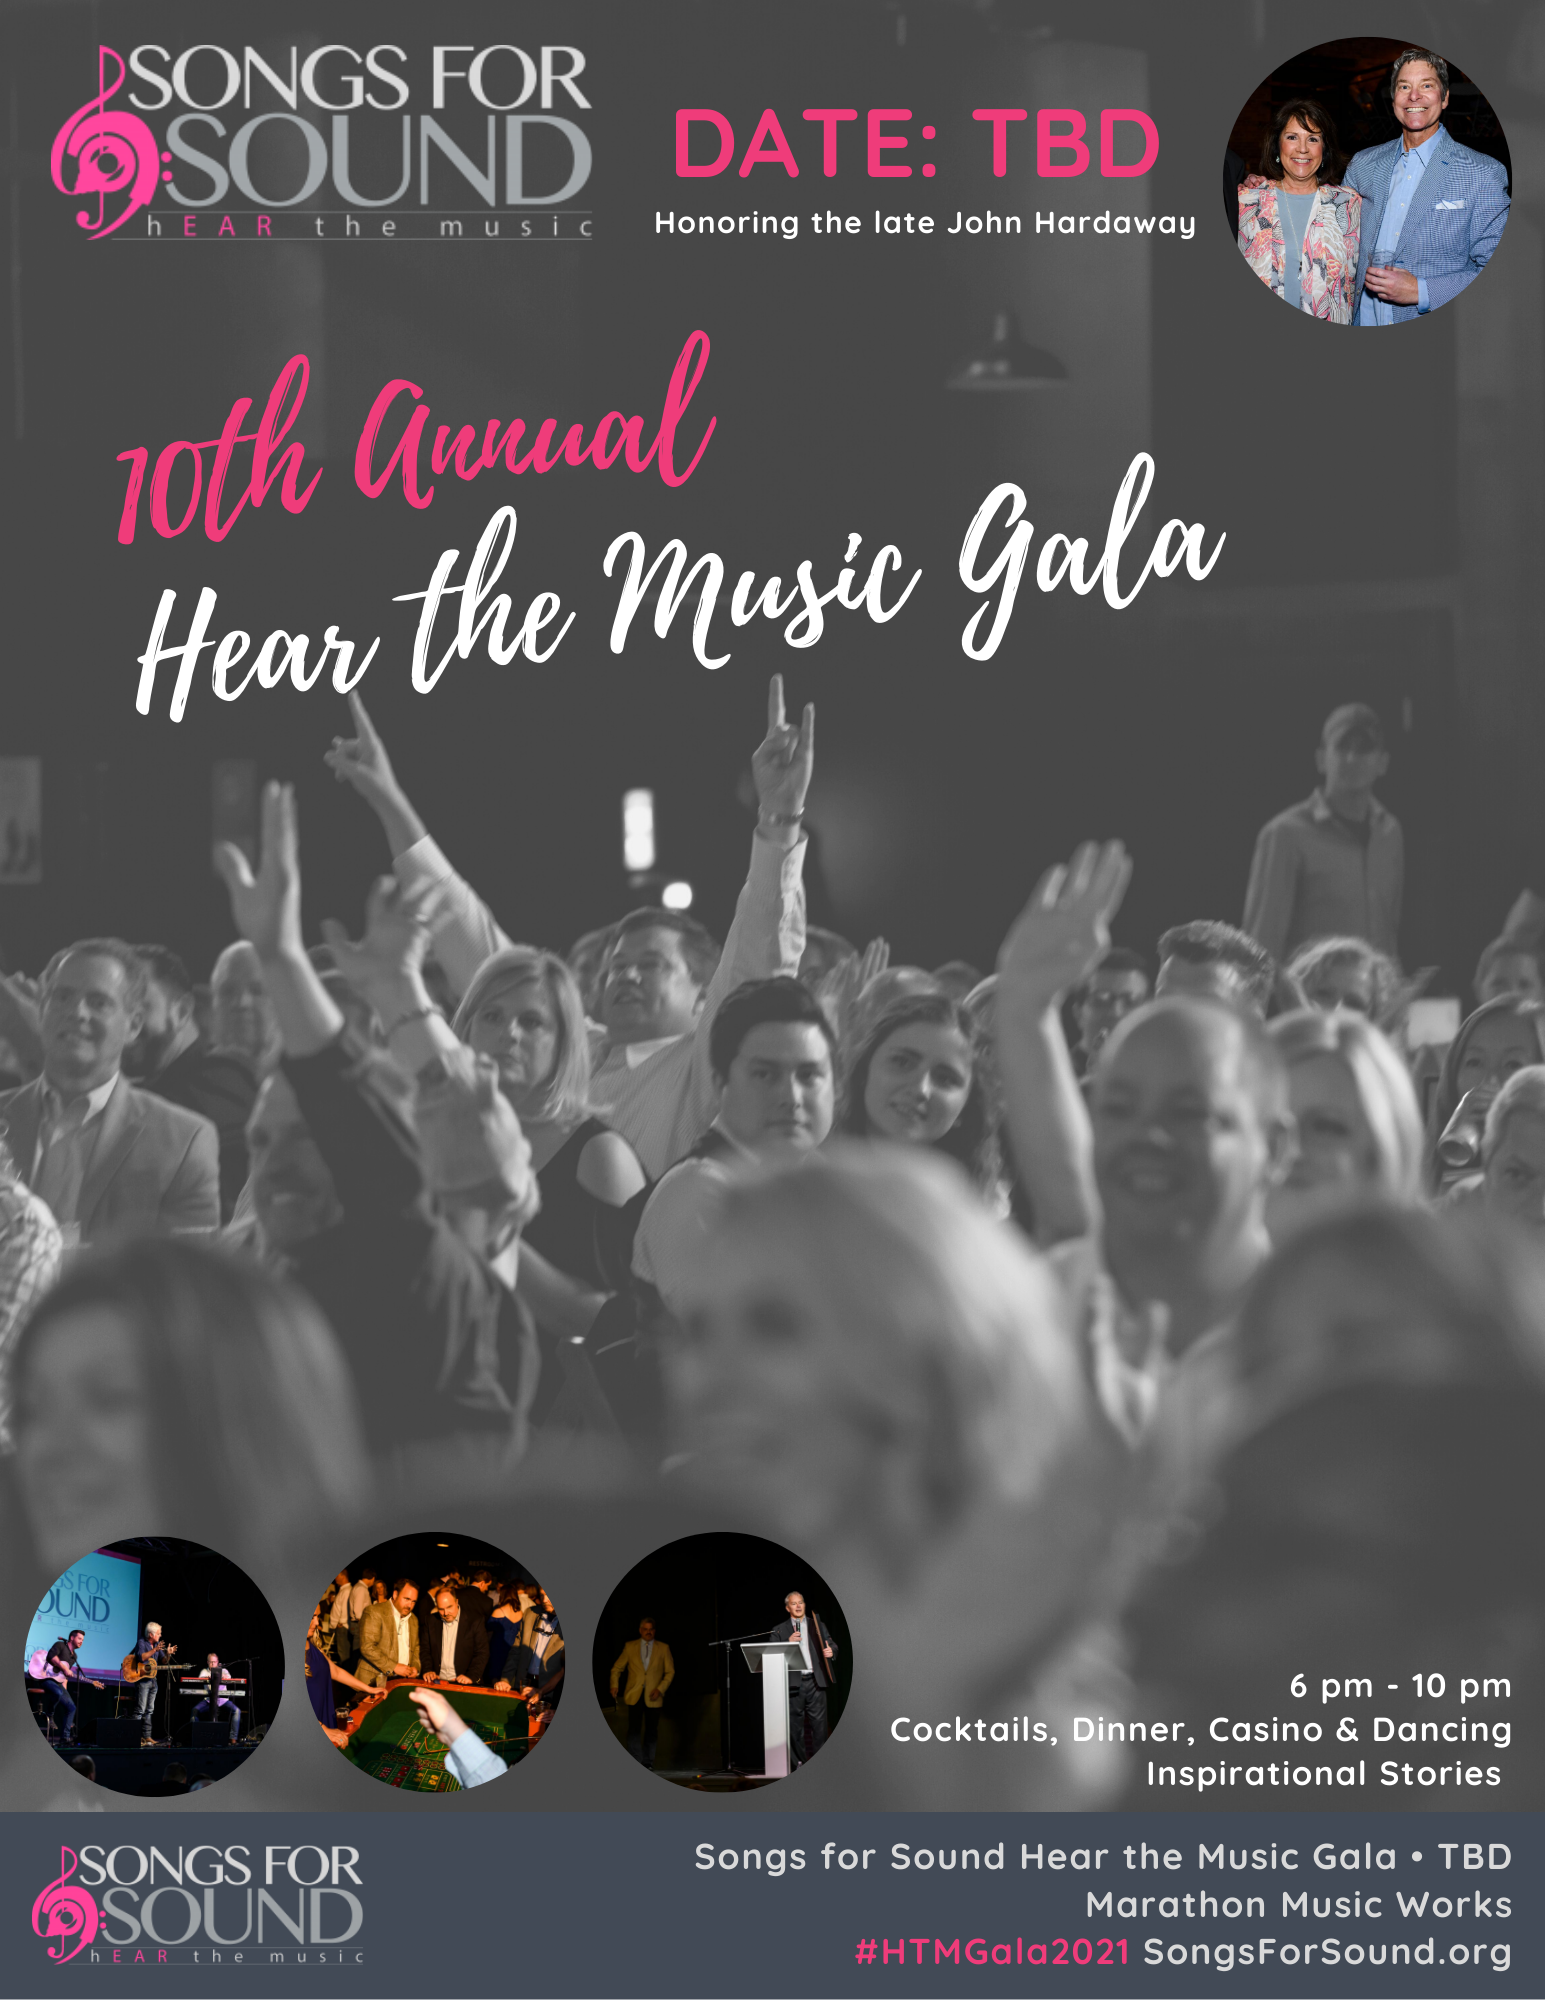 2021 Hear the Music Gala Sponsorship - Be an Event Sponsor